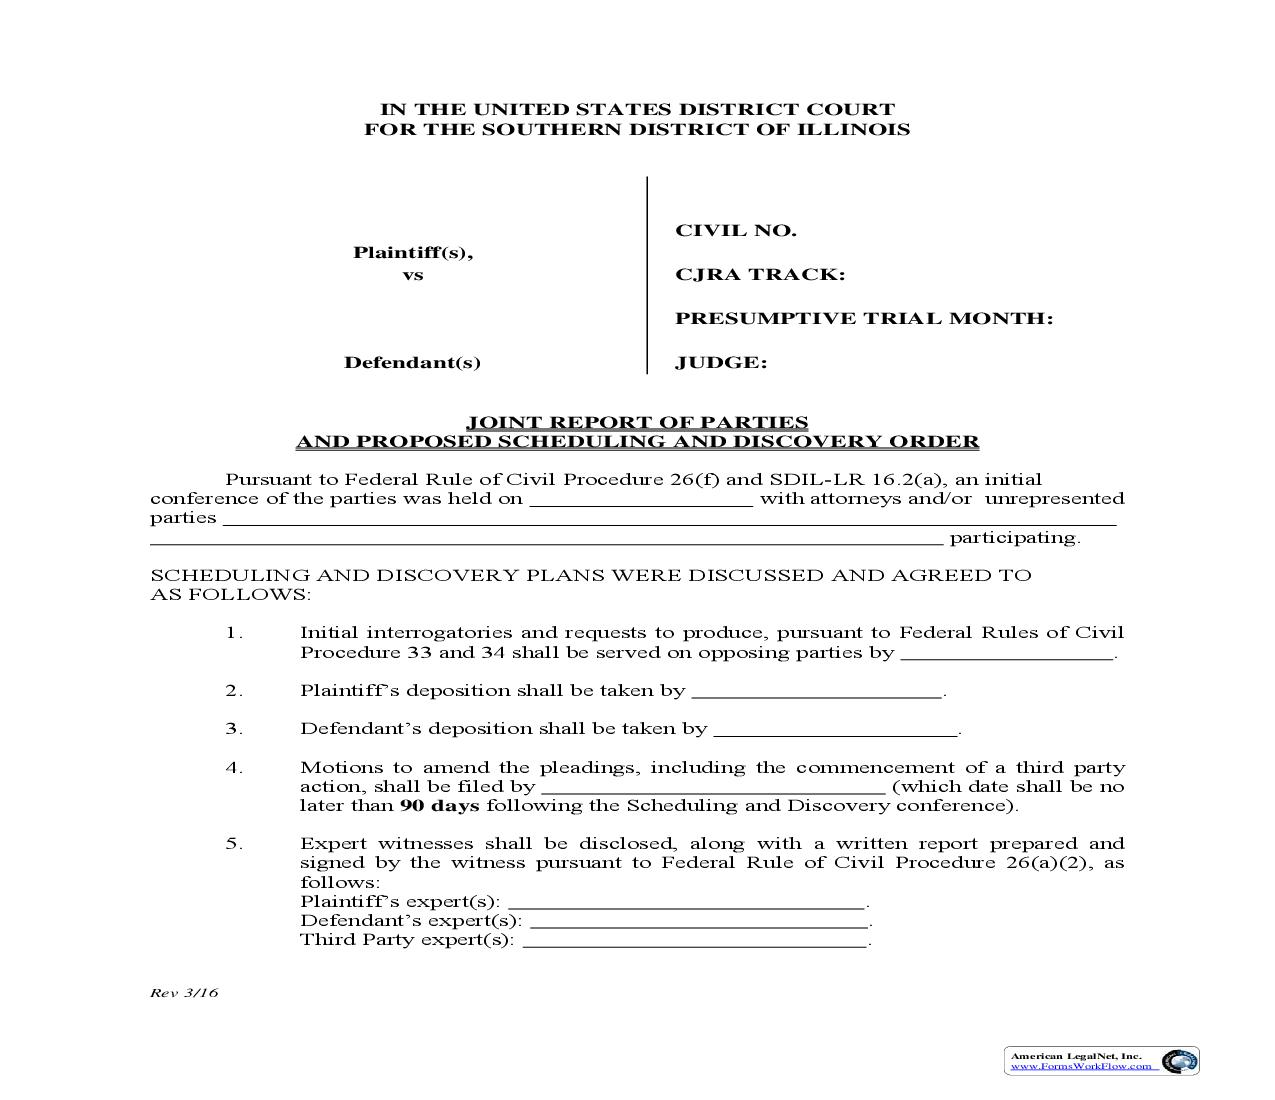 Joint Report Of Parties And Proposed Scheduling And Discovery Order   Pdf Fpdf Doc Docx   Illinois